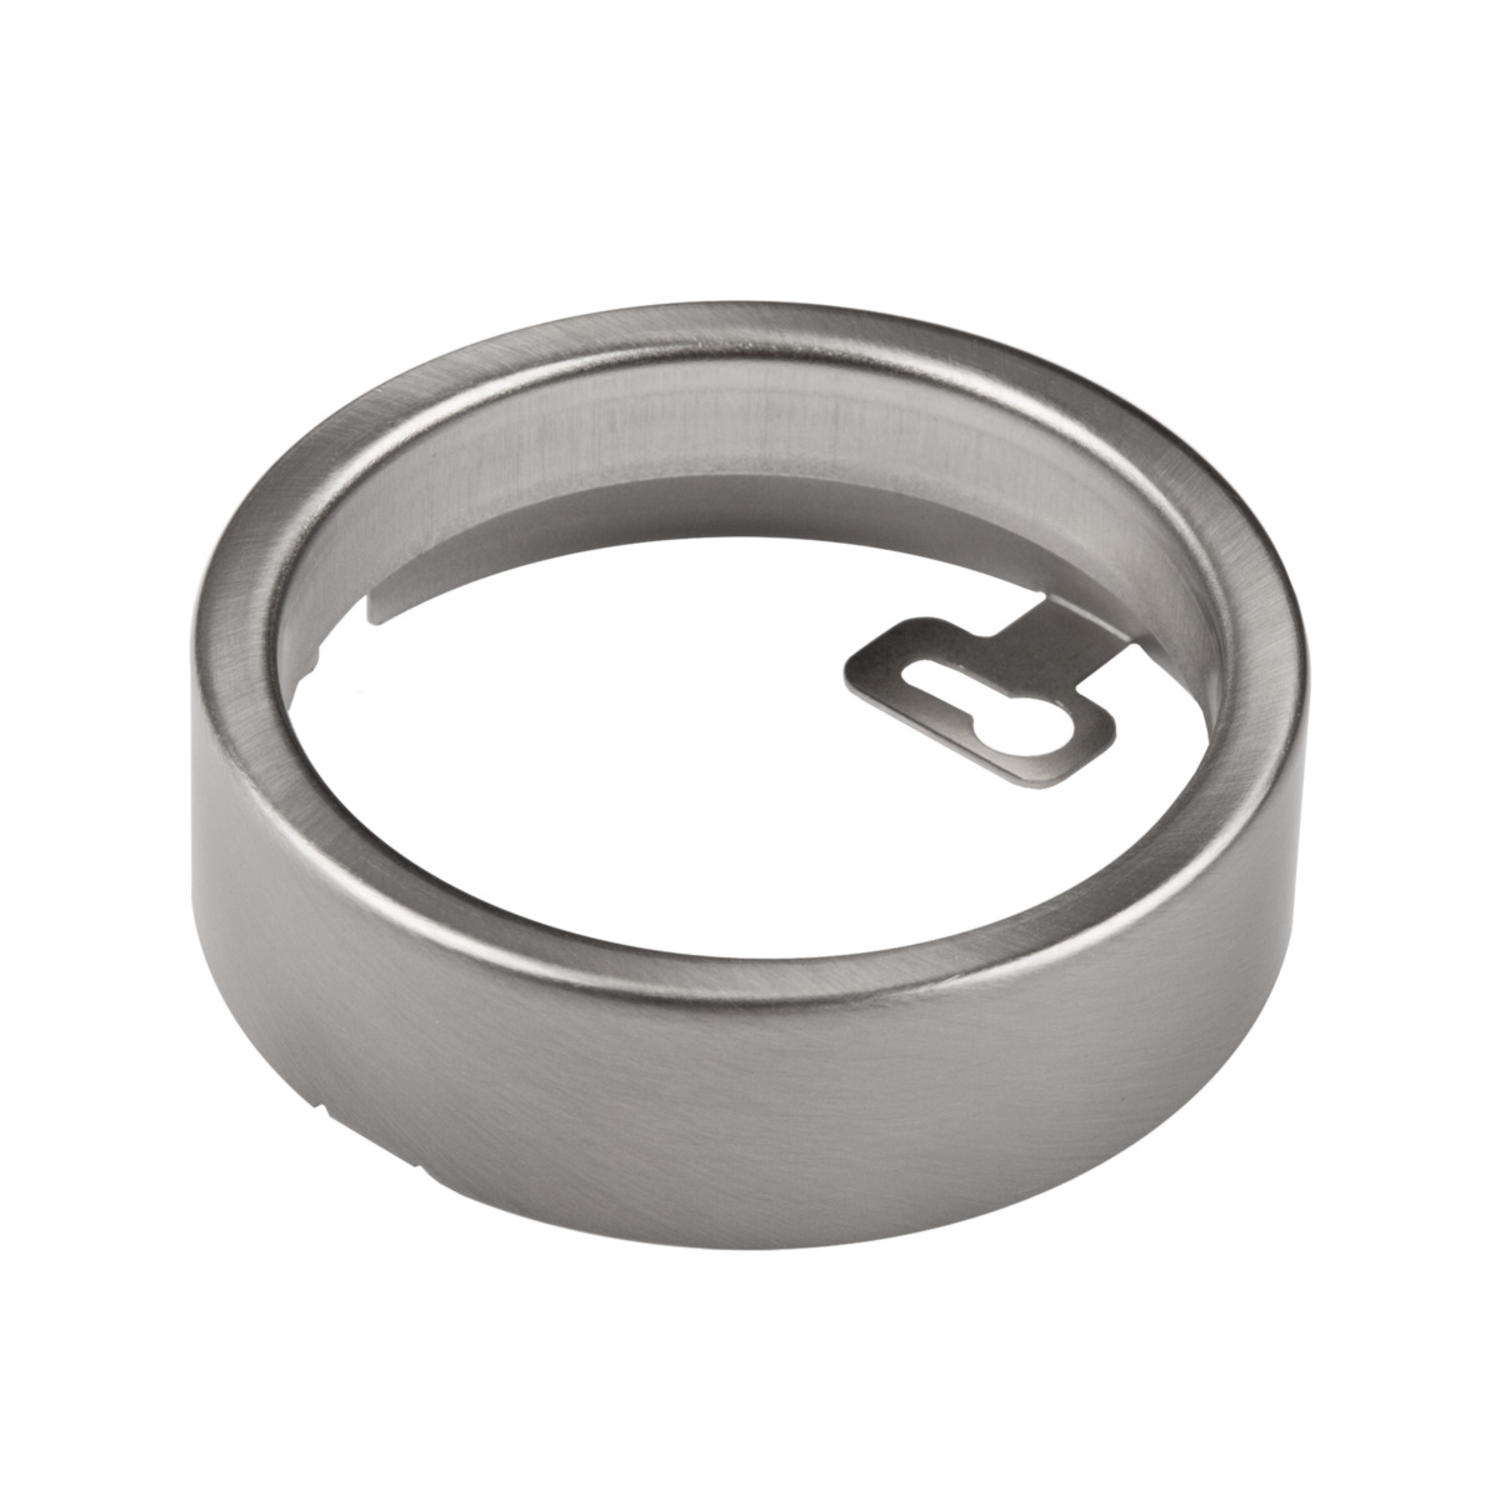 Spacer ring 1202 Brushed steel